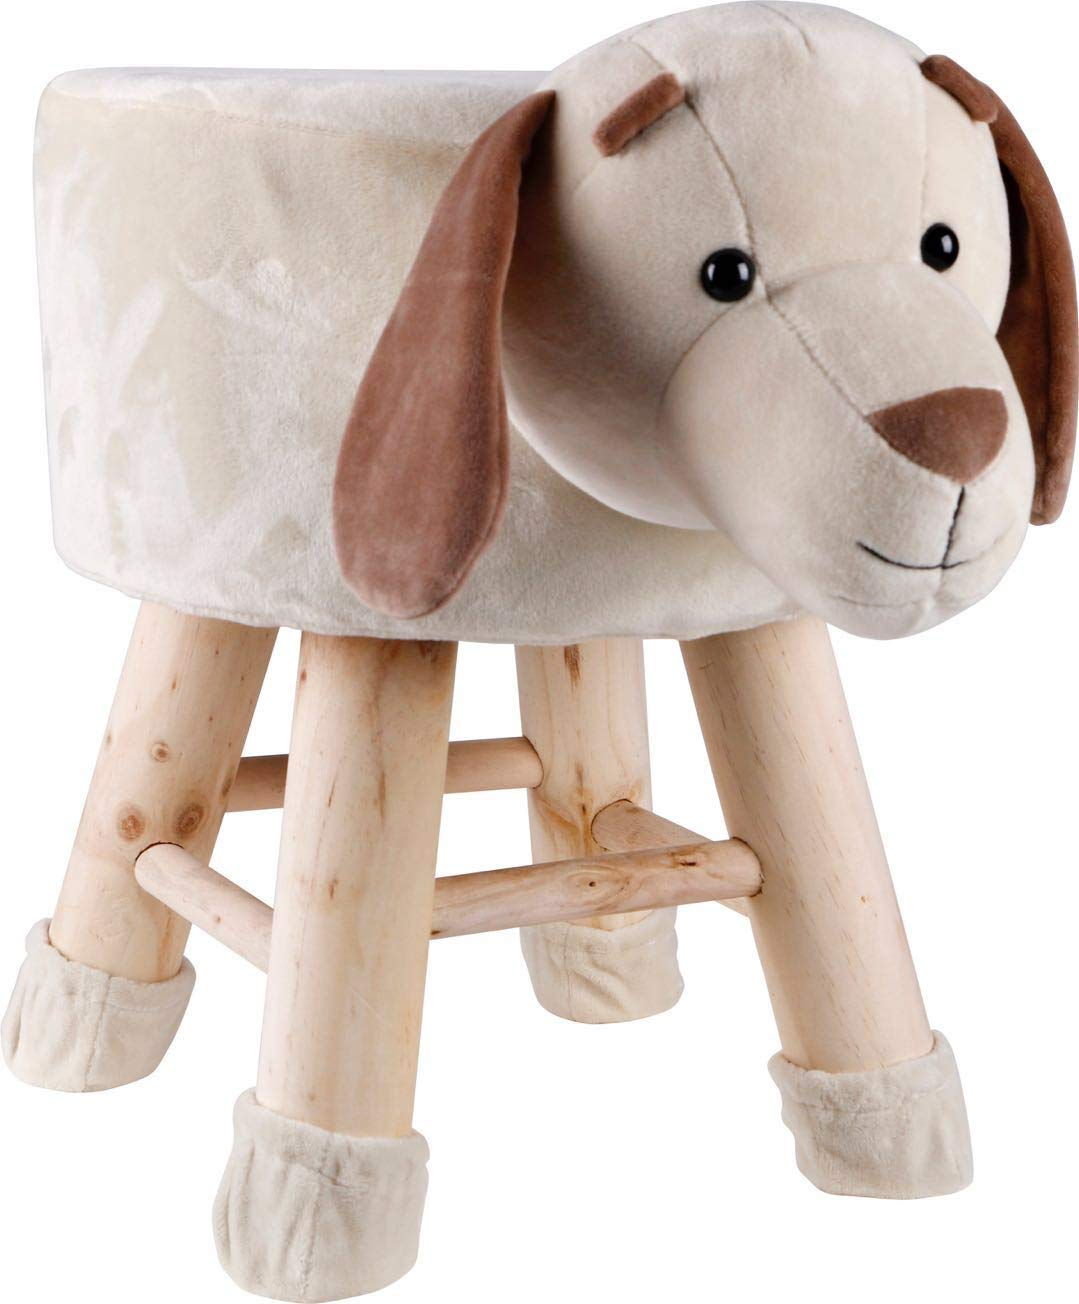 NOVELTY ANIMAL SHAPED ROUND WOOD FOOT STOOL HOME FURNITURE BEDROOM PLAY ROOM